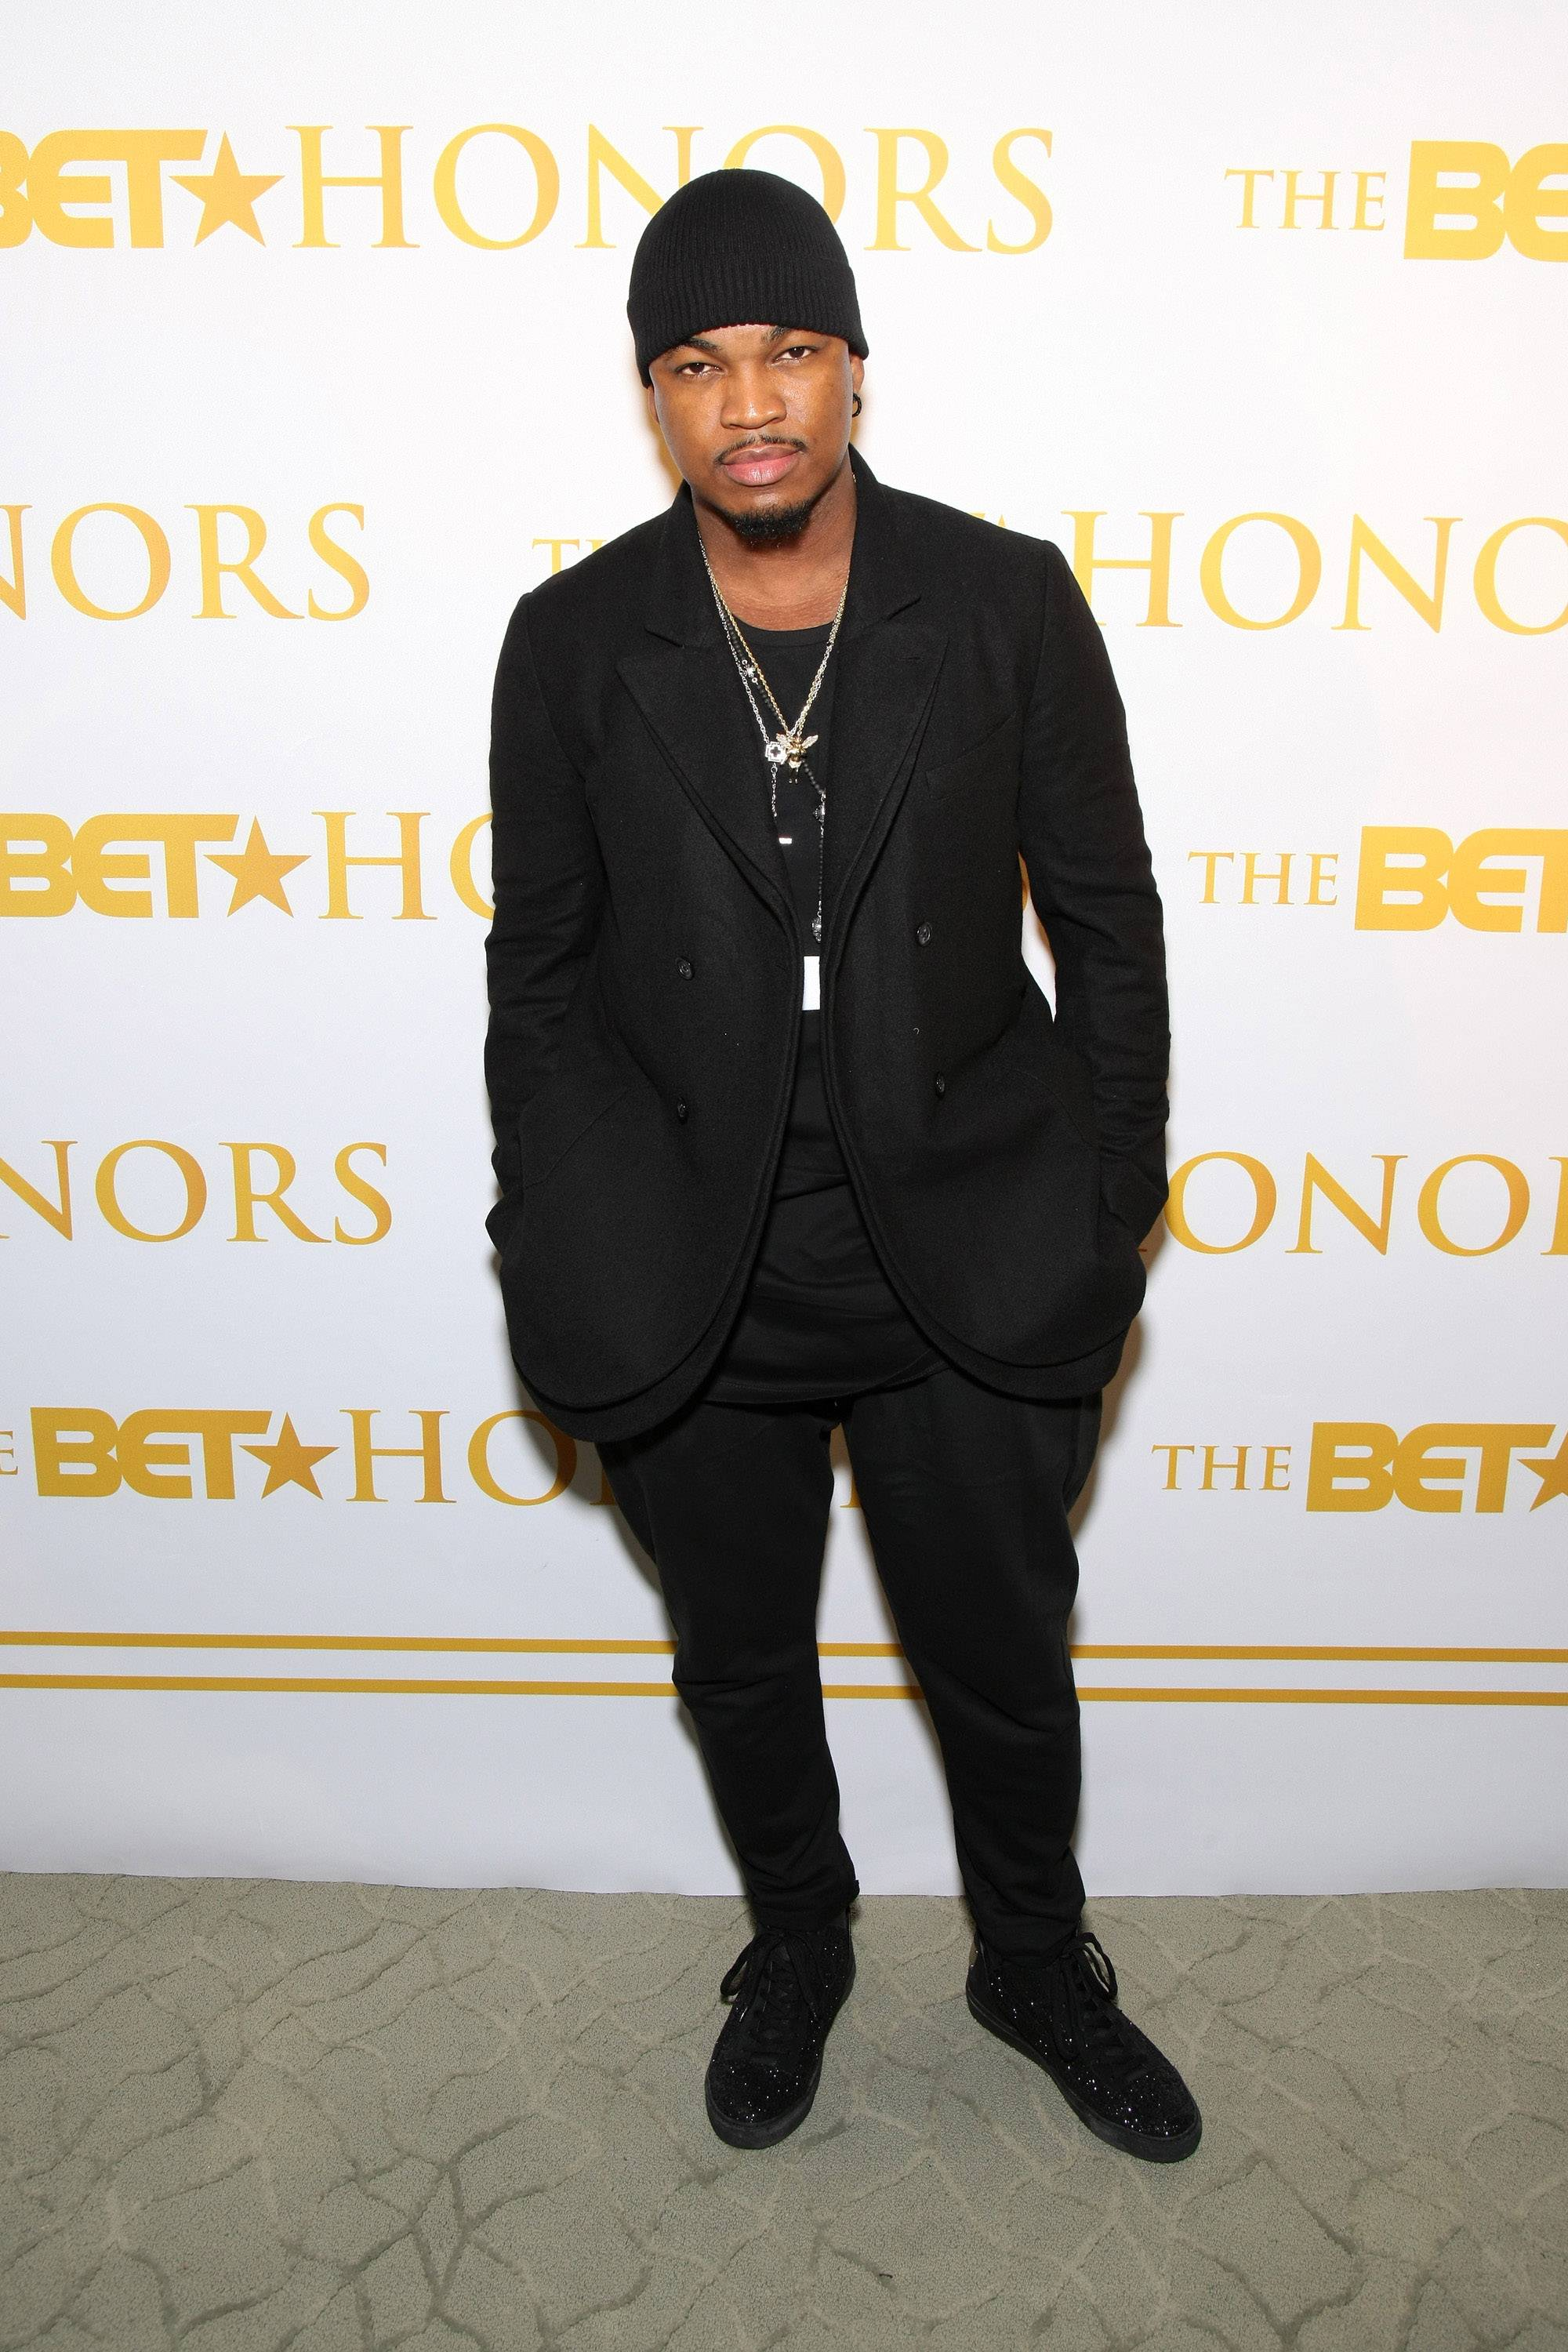 Ne-Yo's for Real - Non-Fiction crooner Ne-Yo strikes a pose on the red carpet. (Photo: Bennett Raglin/BET/Getty Images for BET)